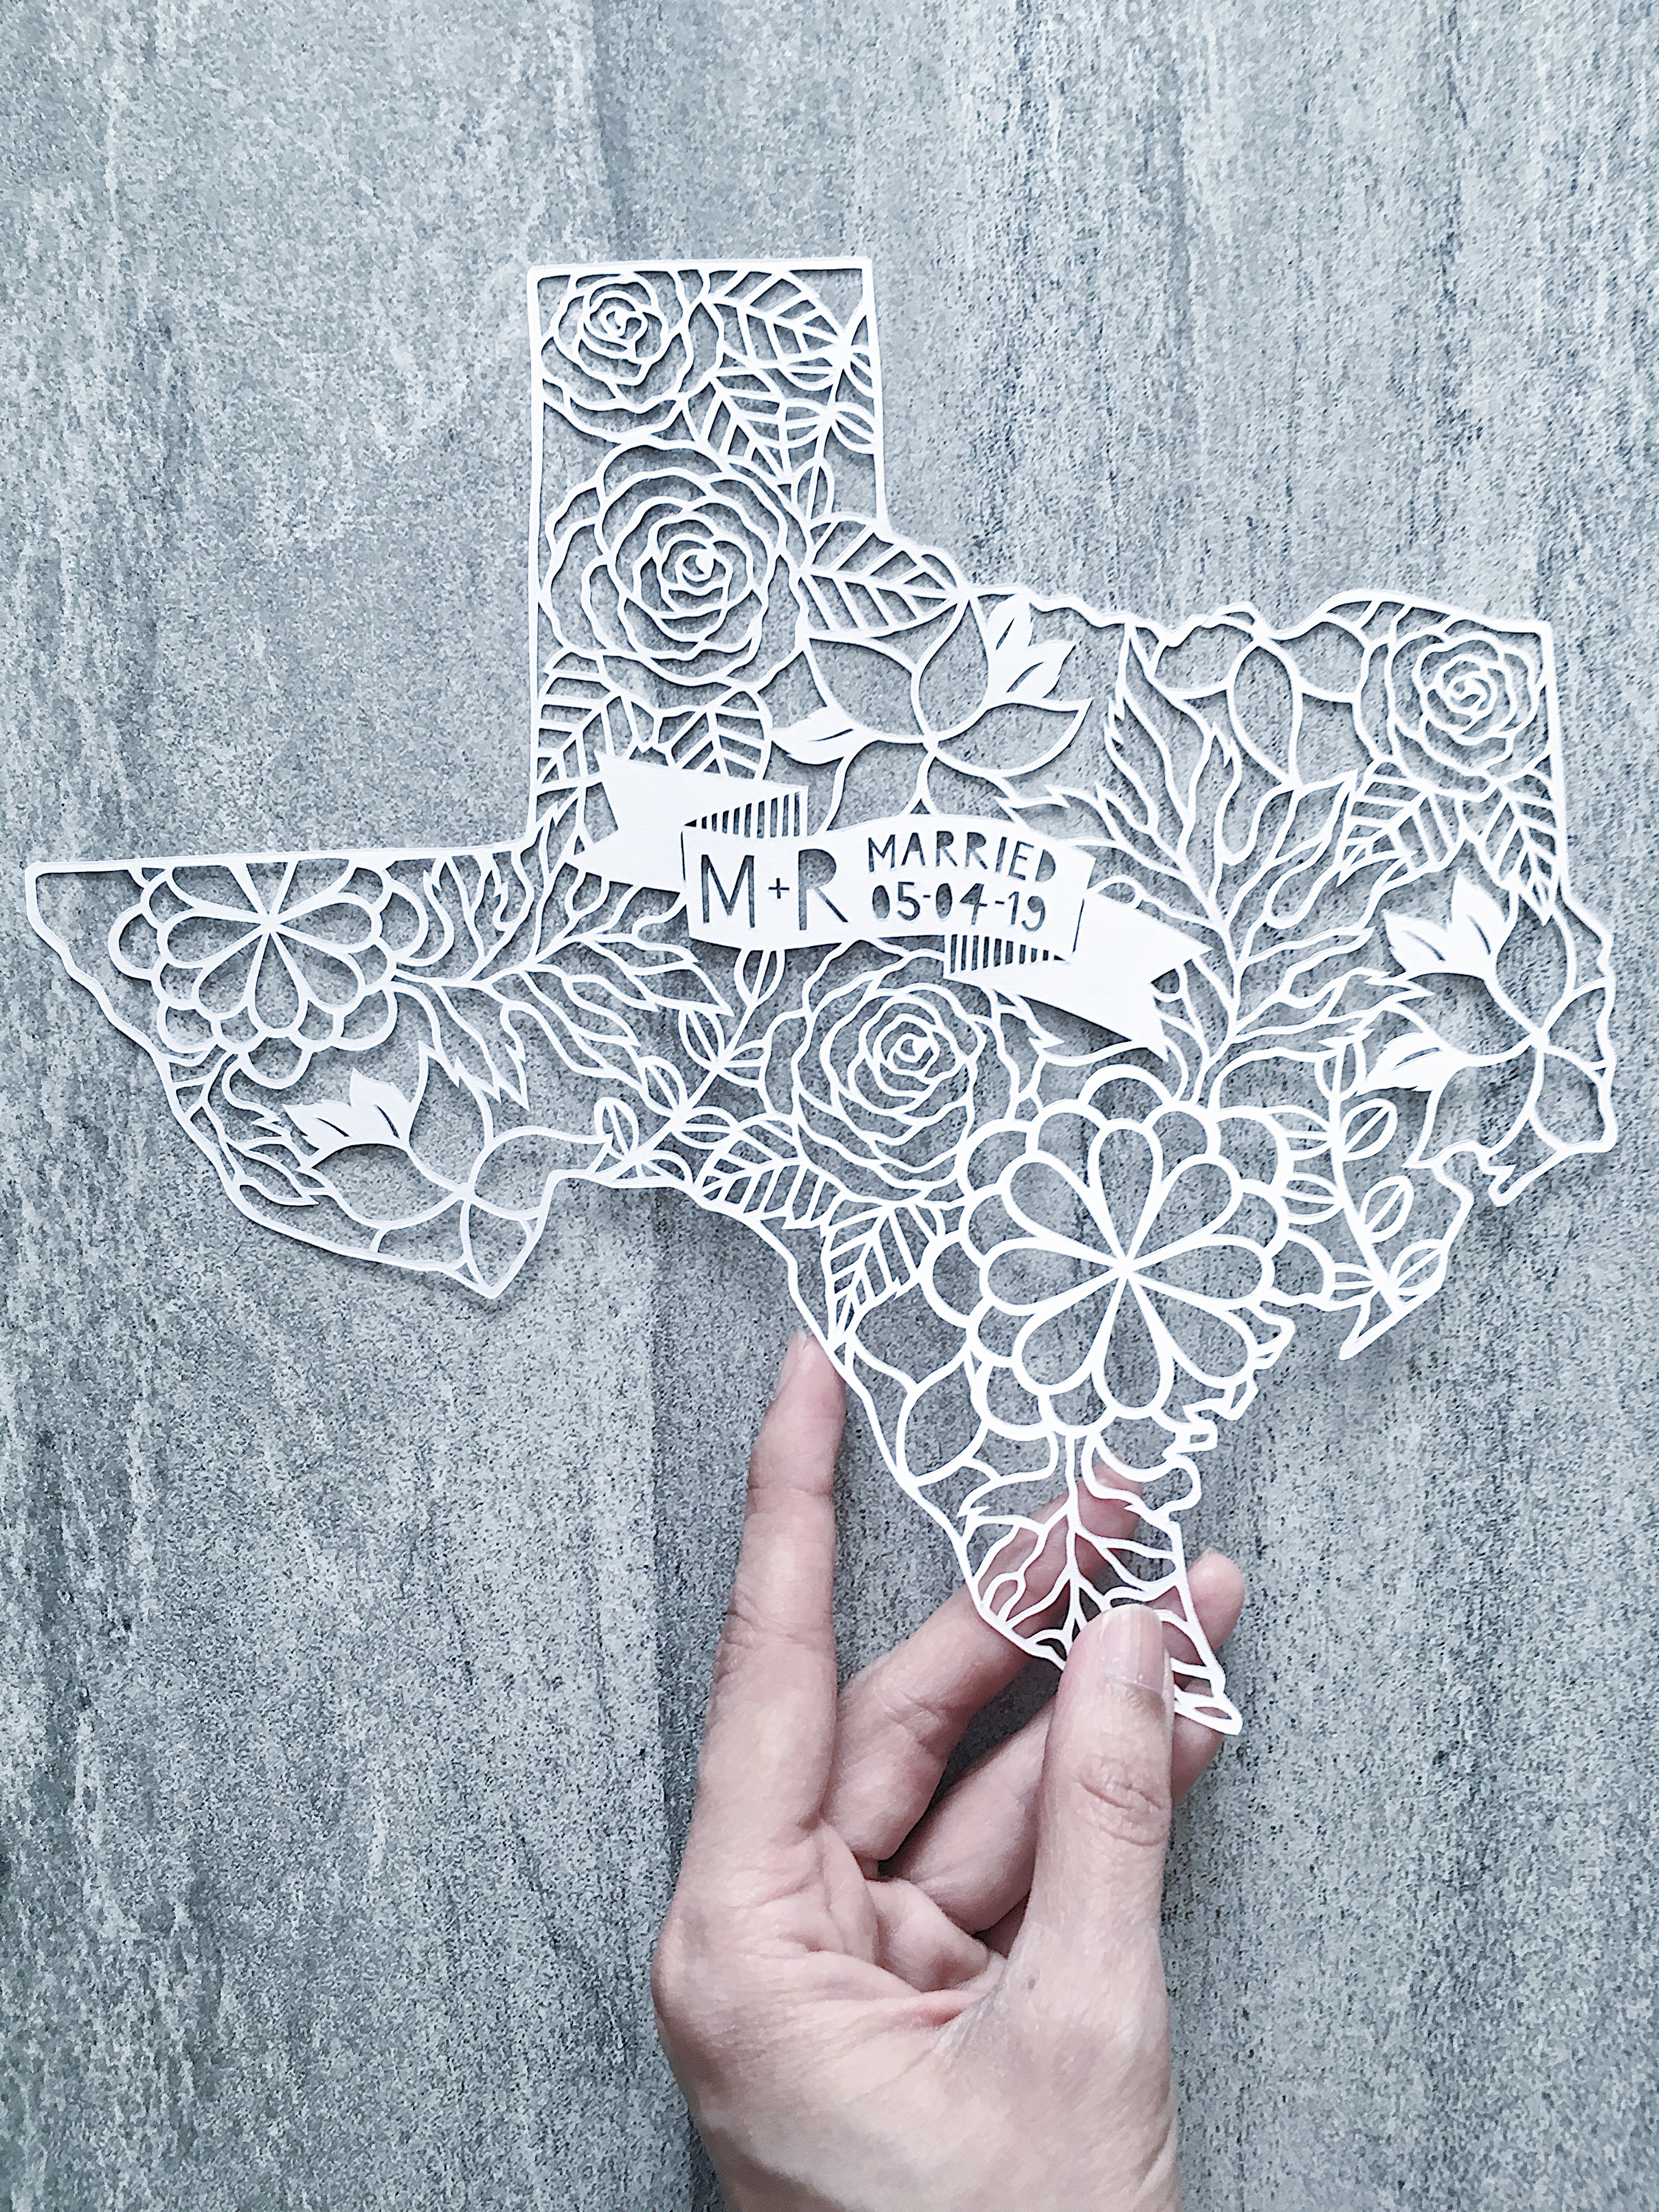 personalized-texas-wedding-gift-papercut-map-scherenschnitte-papercutting-art (10)